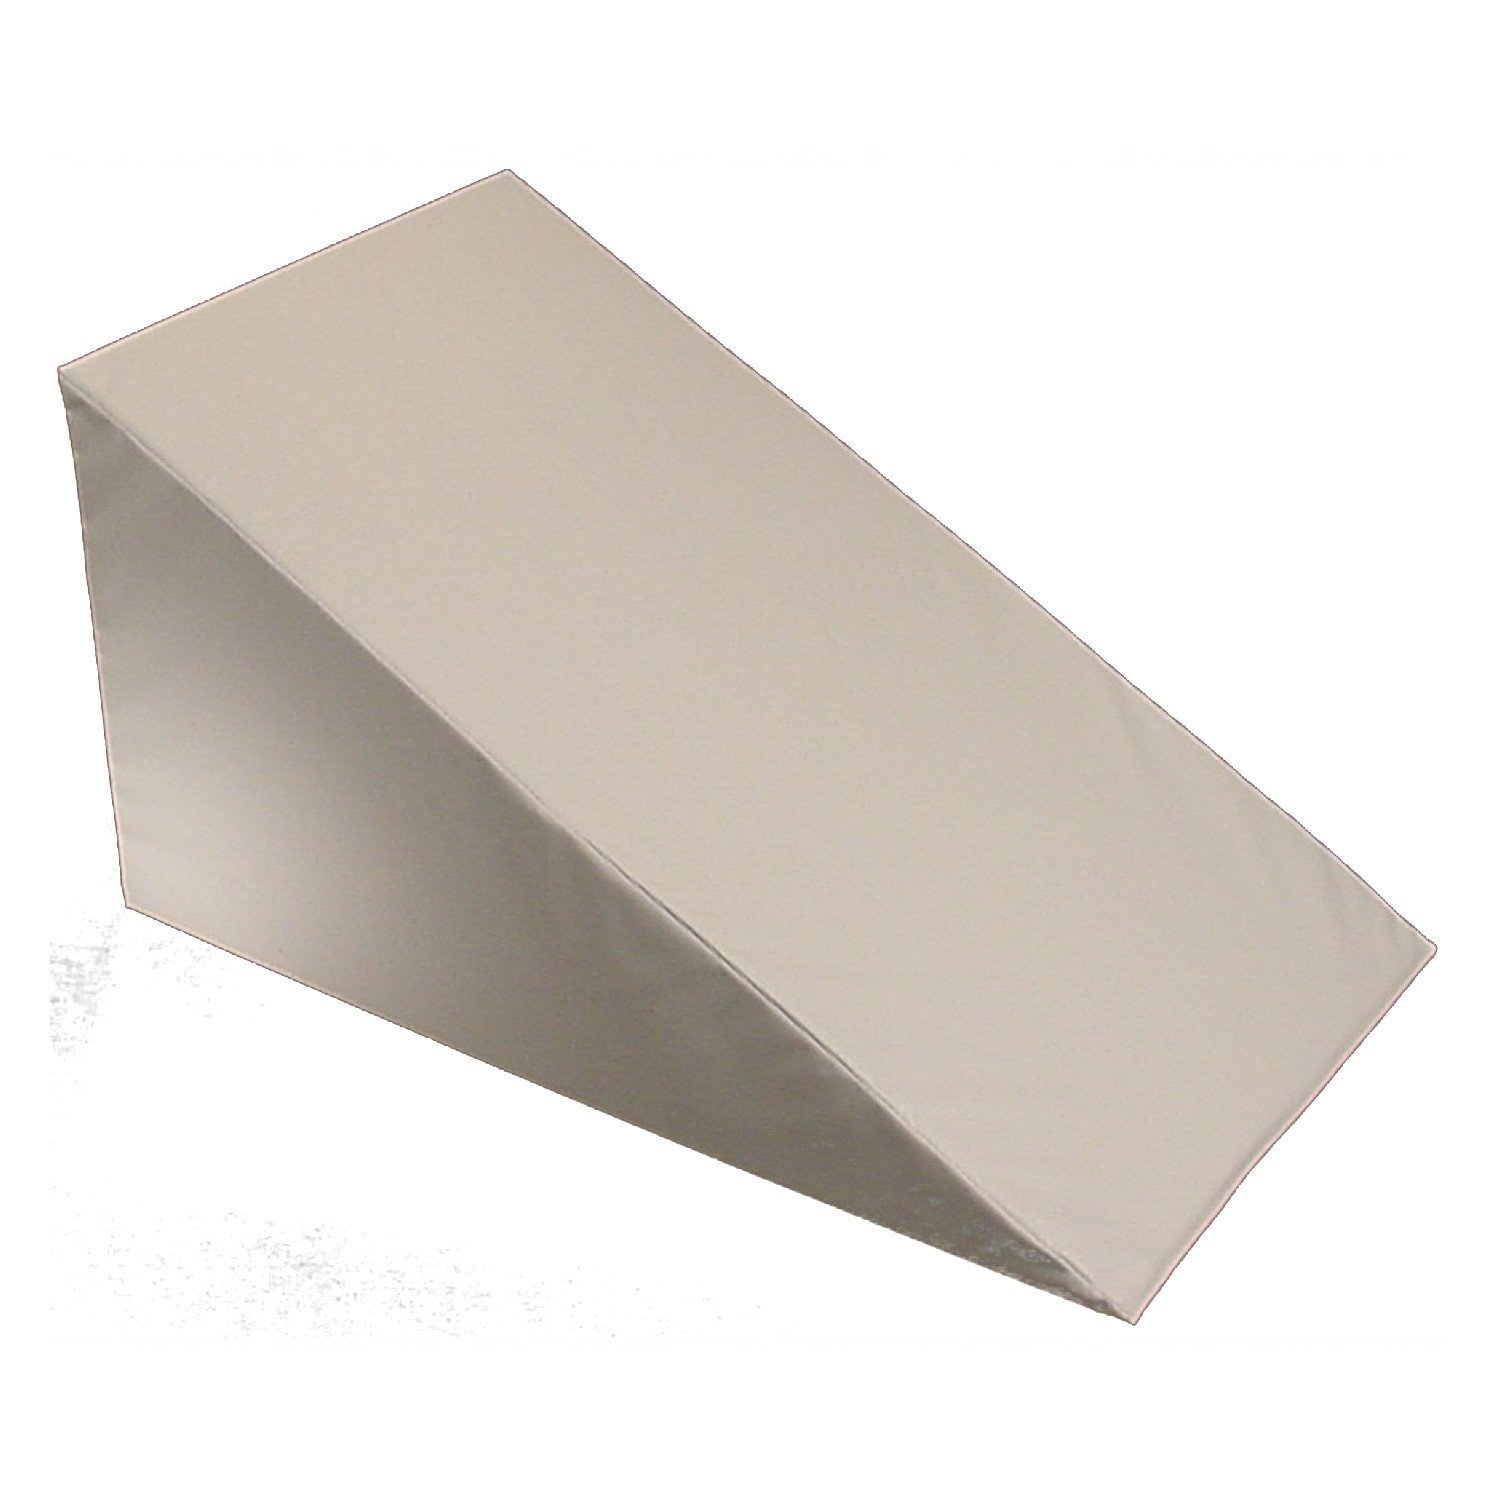 "Bed Wedge Replacement Cover (24"" X 24"" X 7"", White)"